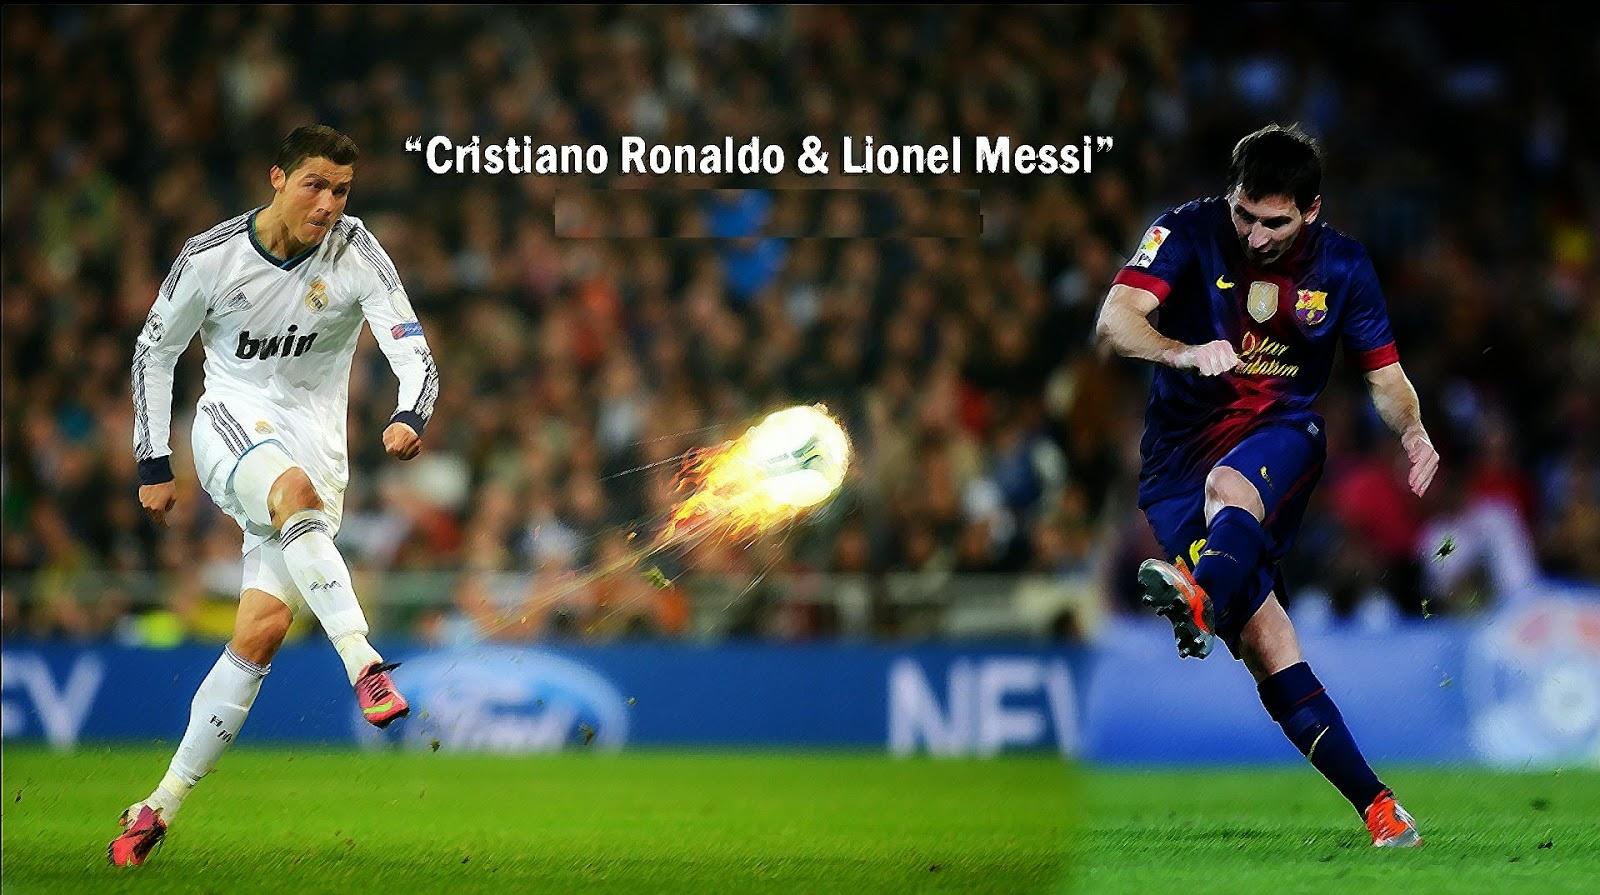 c ronaldo 2014 wallpaper hd joy studio design gallery